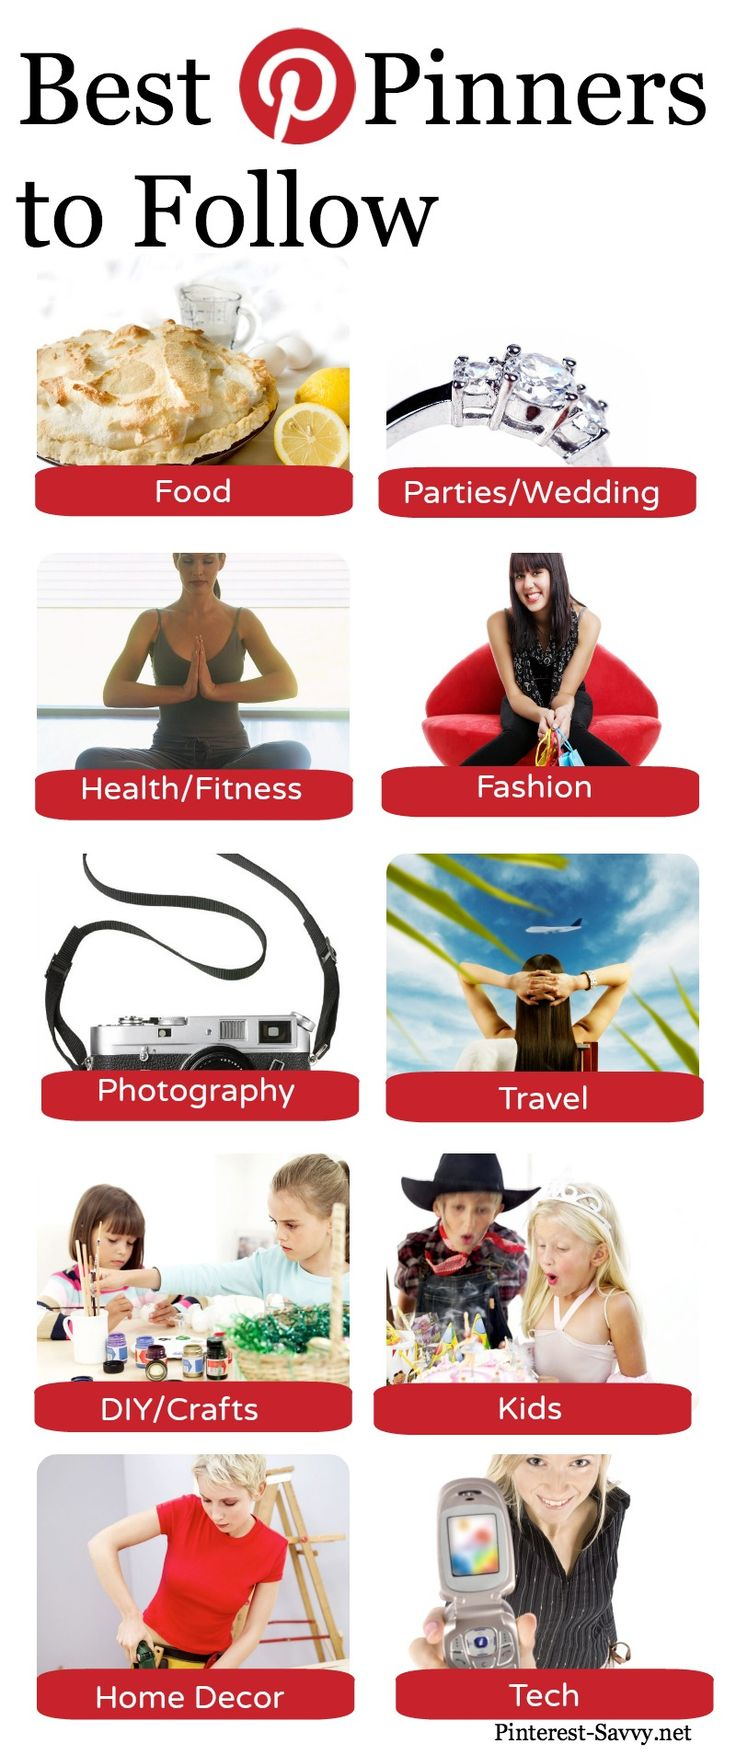 Who to Follow on Pinterest - in food, wedding, health, fashion, photography, travel, DIY, kids, home decor, and tech